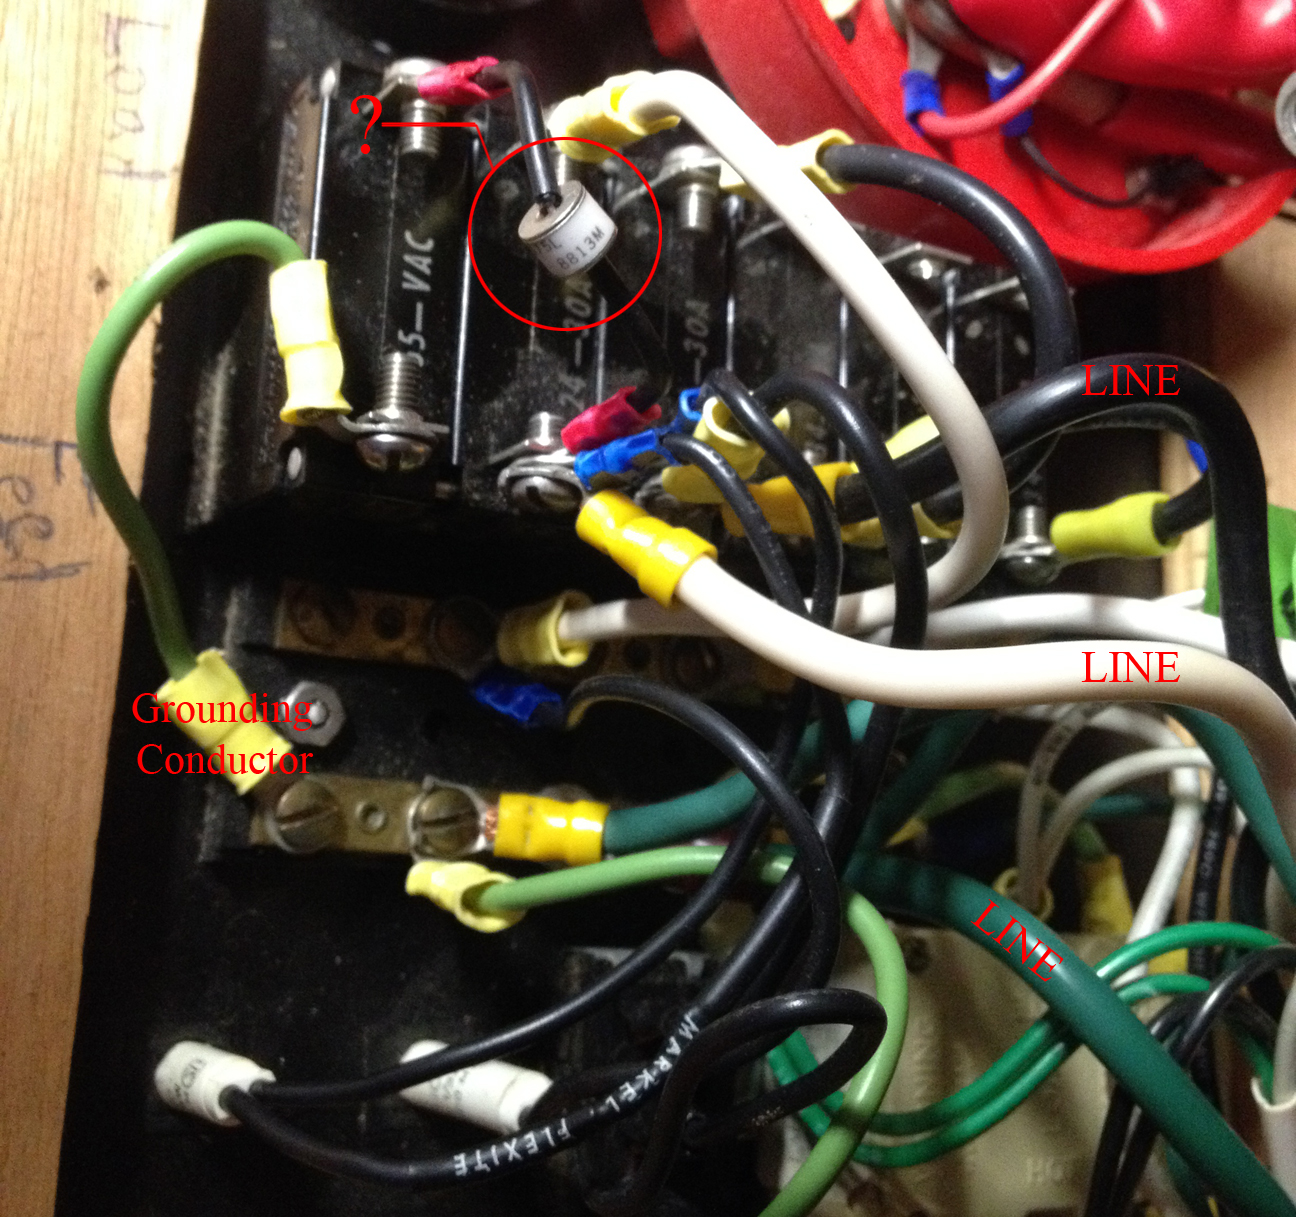 House Gfi Trips With Boat Shore Power Cord Sailboatownerscom Forums Plug Not A Socket Feeding The Ac System Acswitch